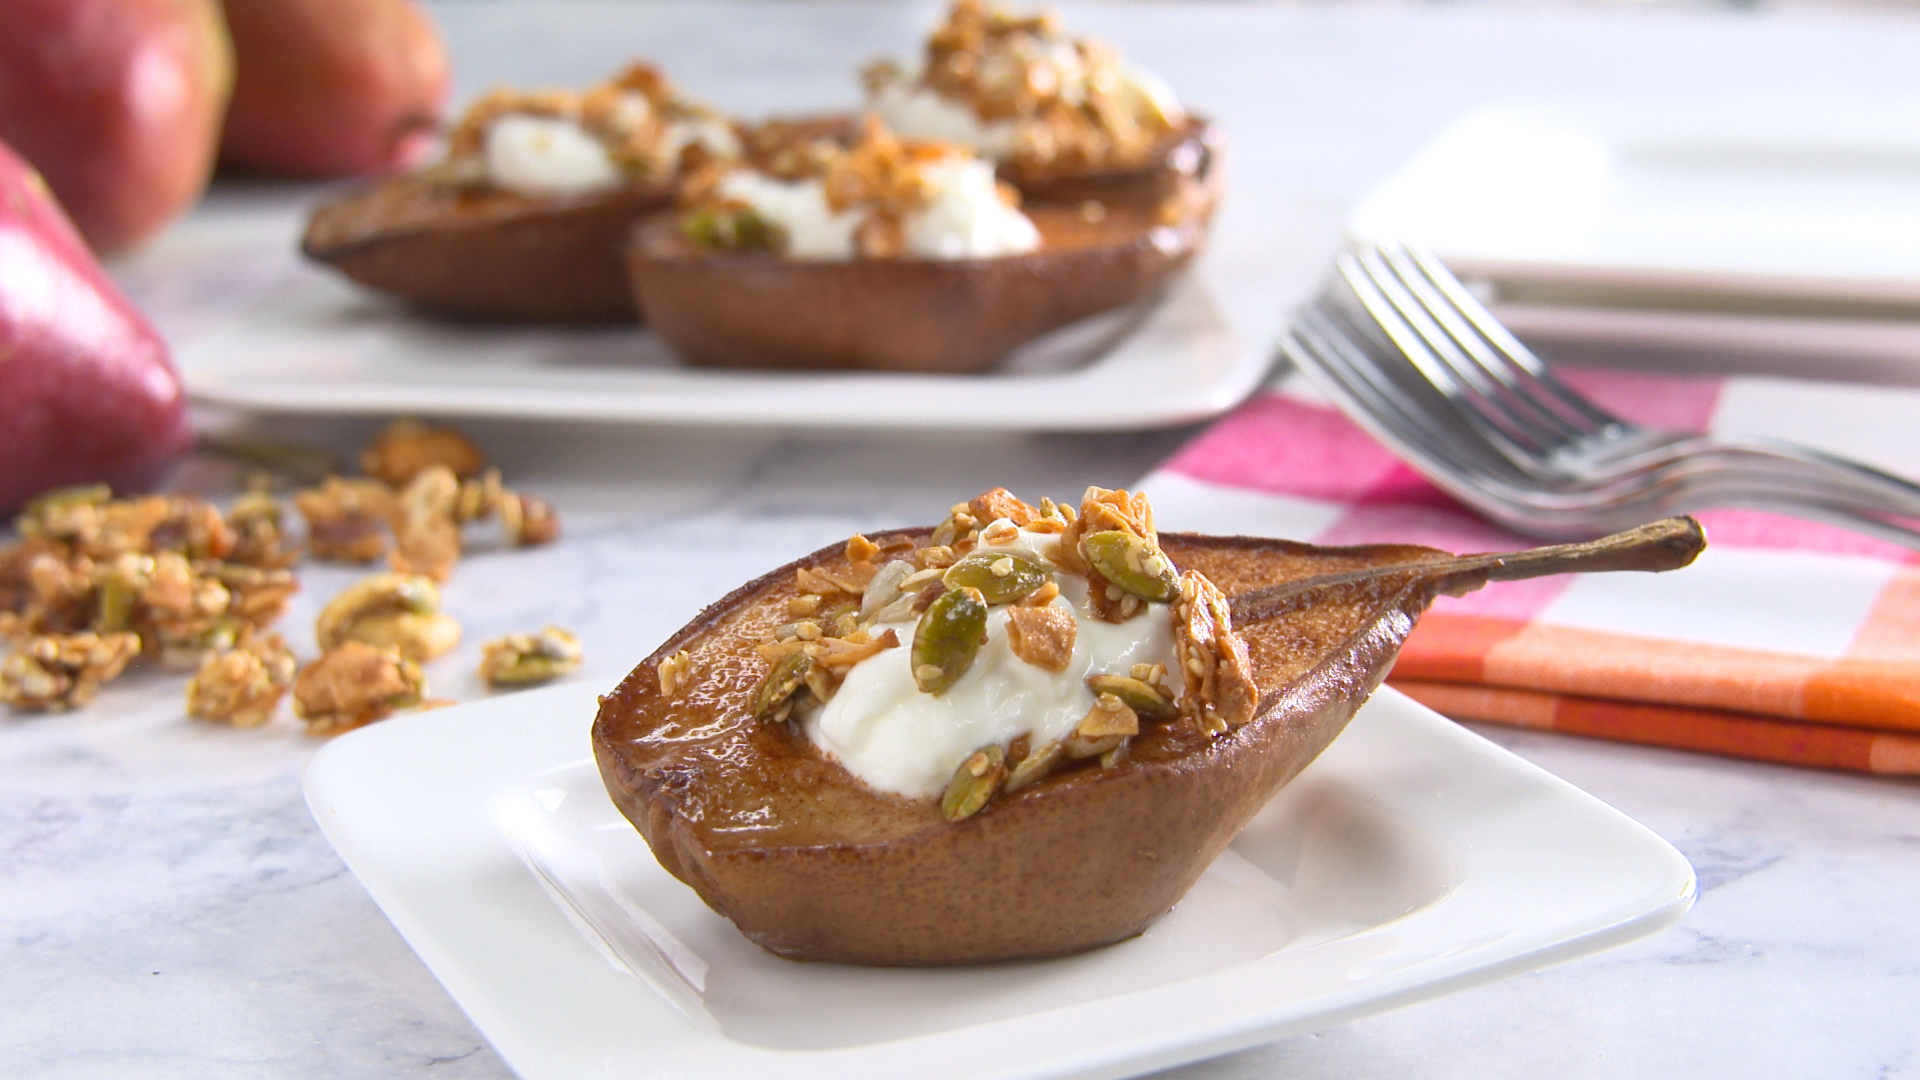 Best Bites: Healthy holidays baked pears with pumpkin granola